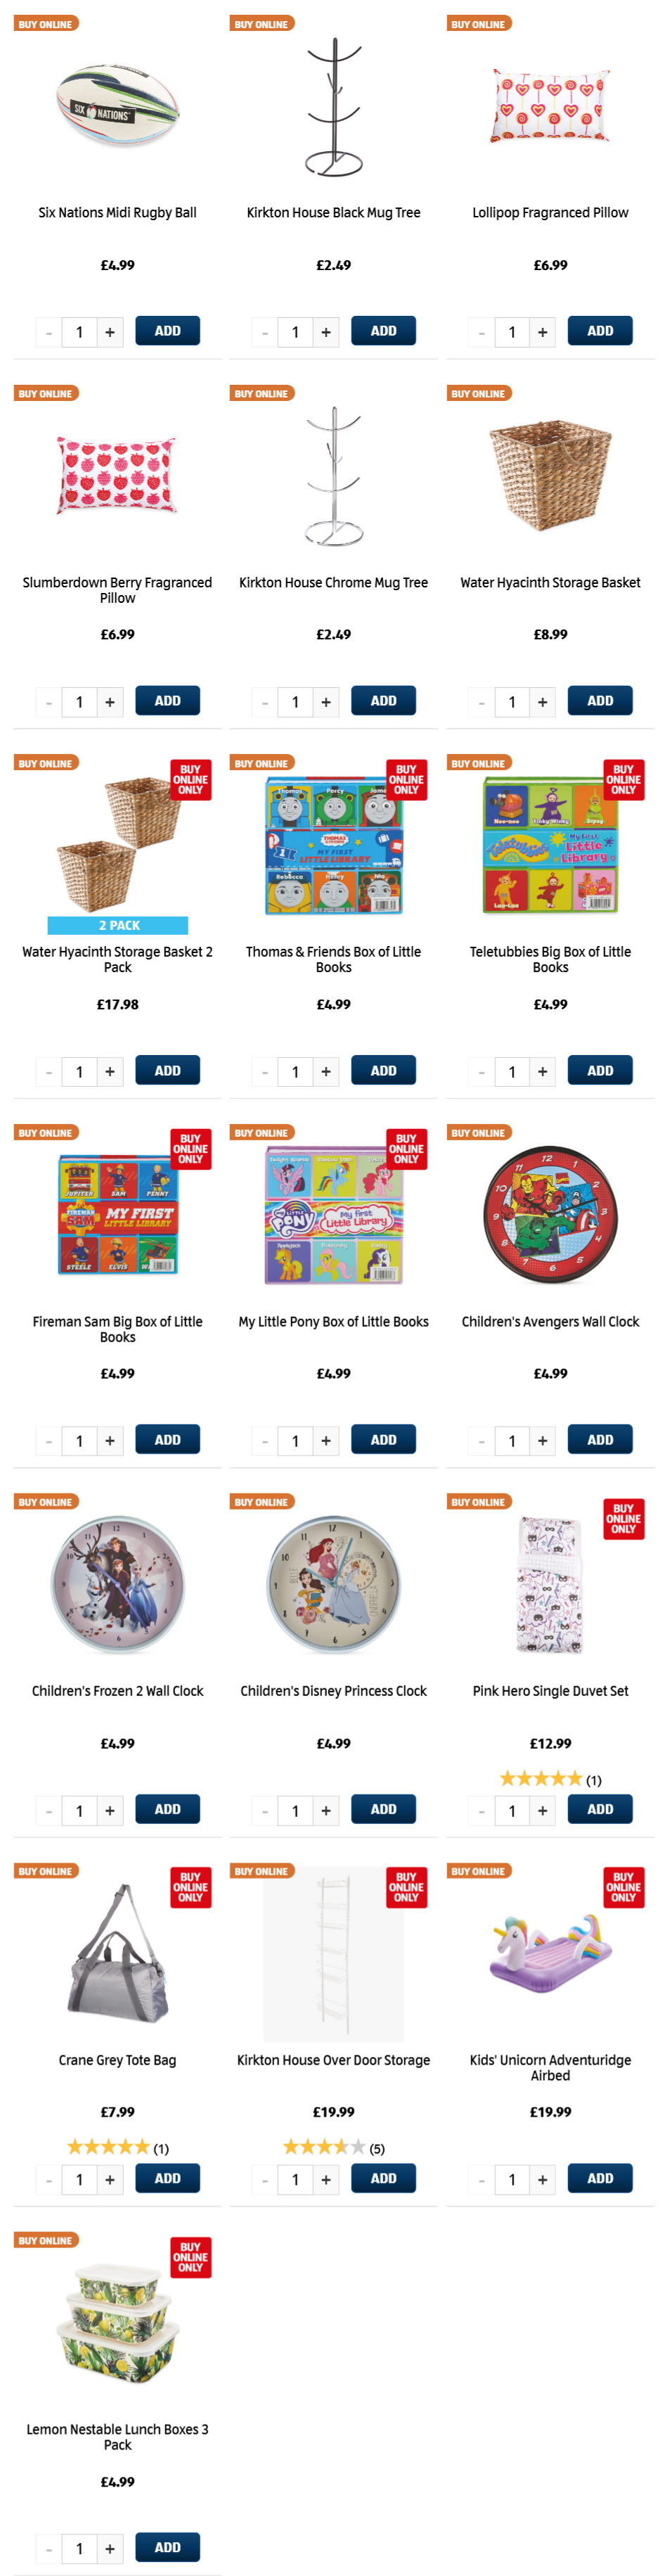 ALDI Kids Bedroom, Storage, Rugby from 4th February 2021 ALDI Thursday Offers